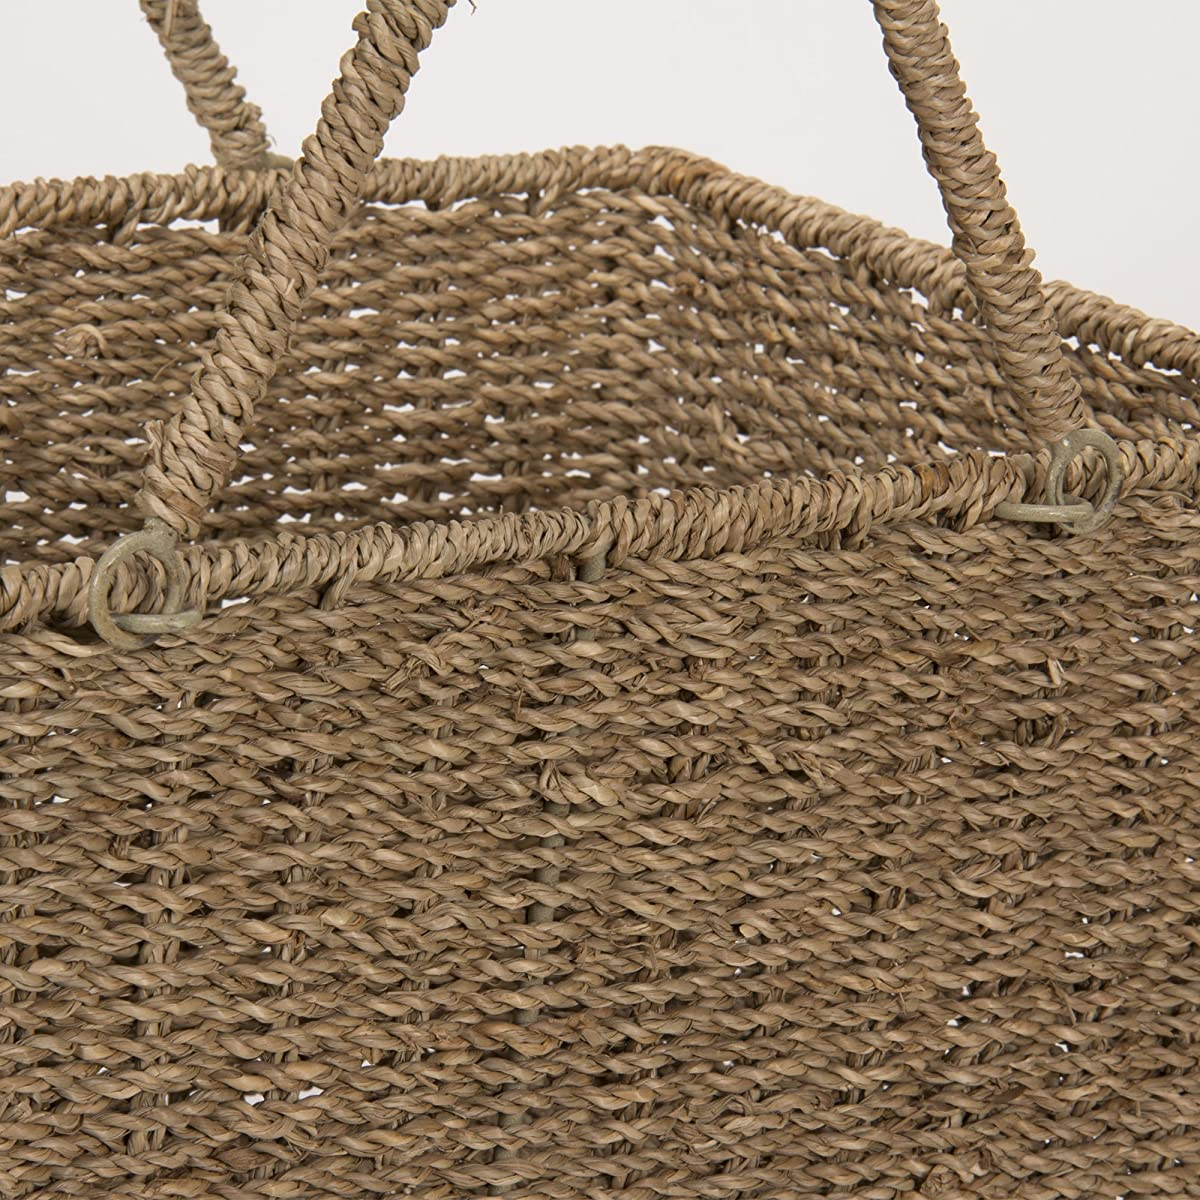 Household Essentials ML 5647 Seagrass Wicker Stair Step Basket With Handle  | Natural Brown